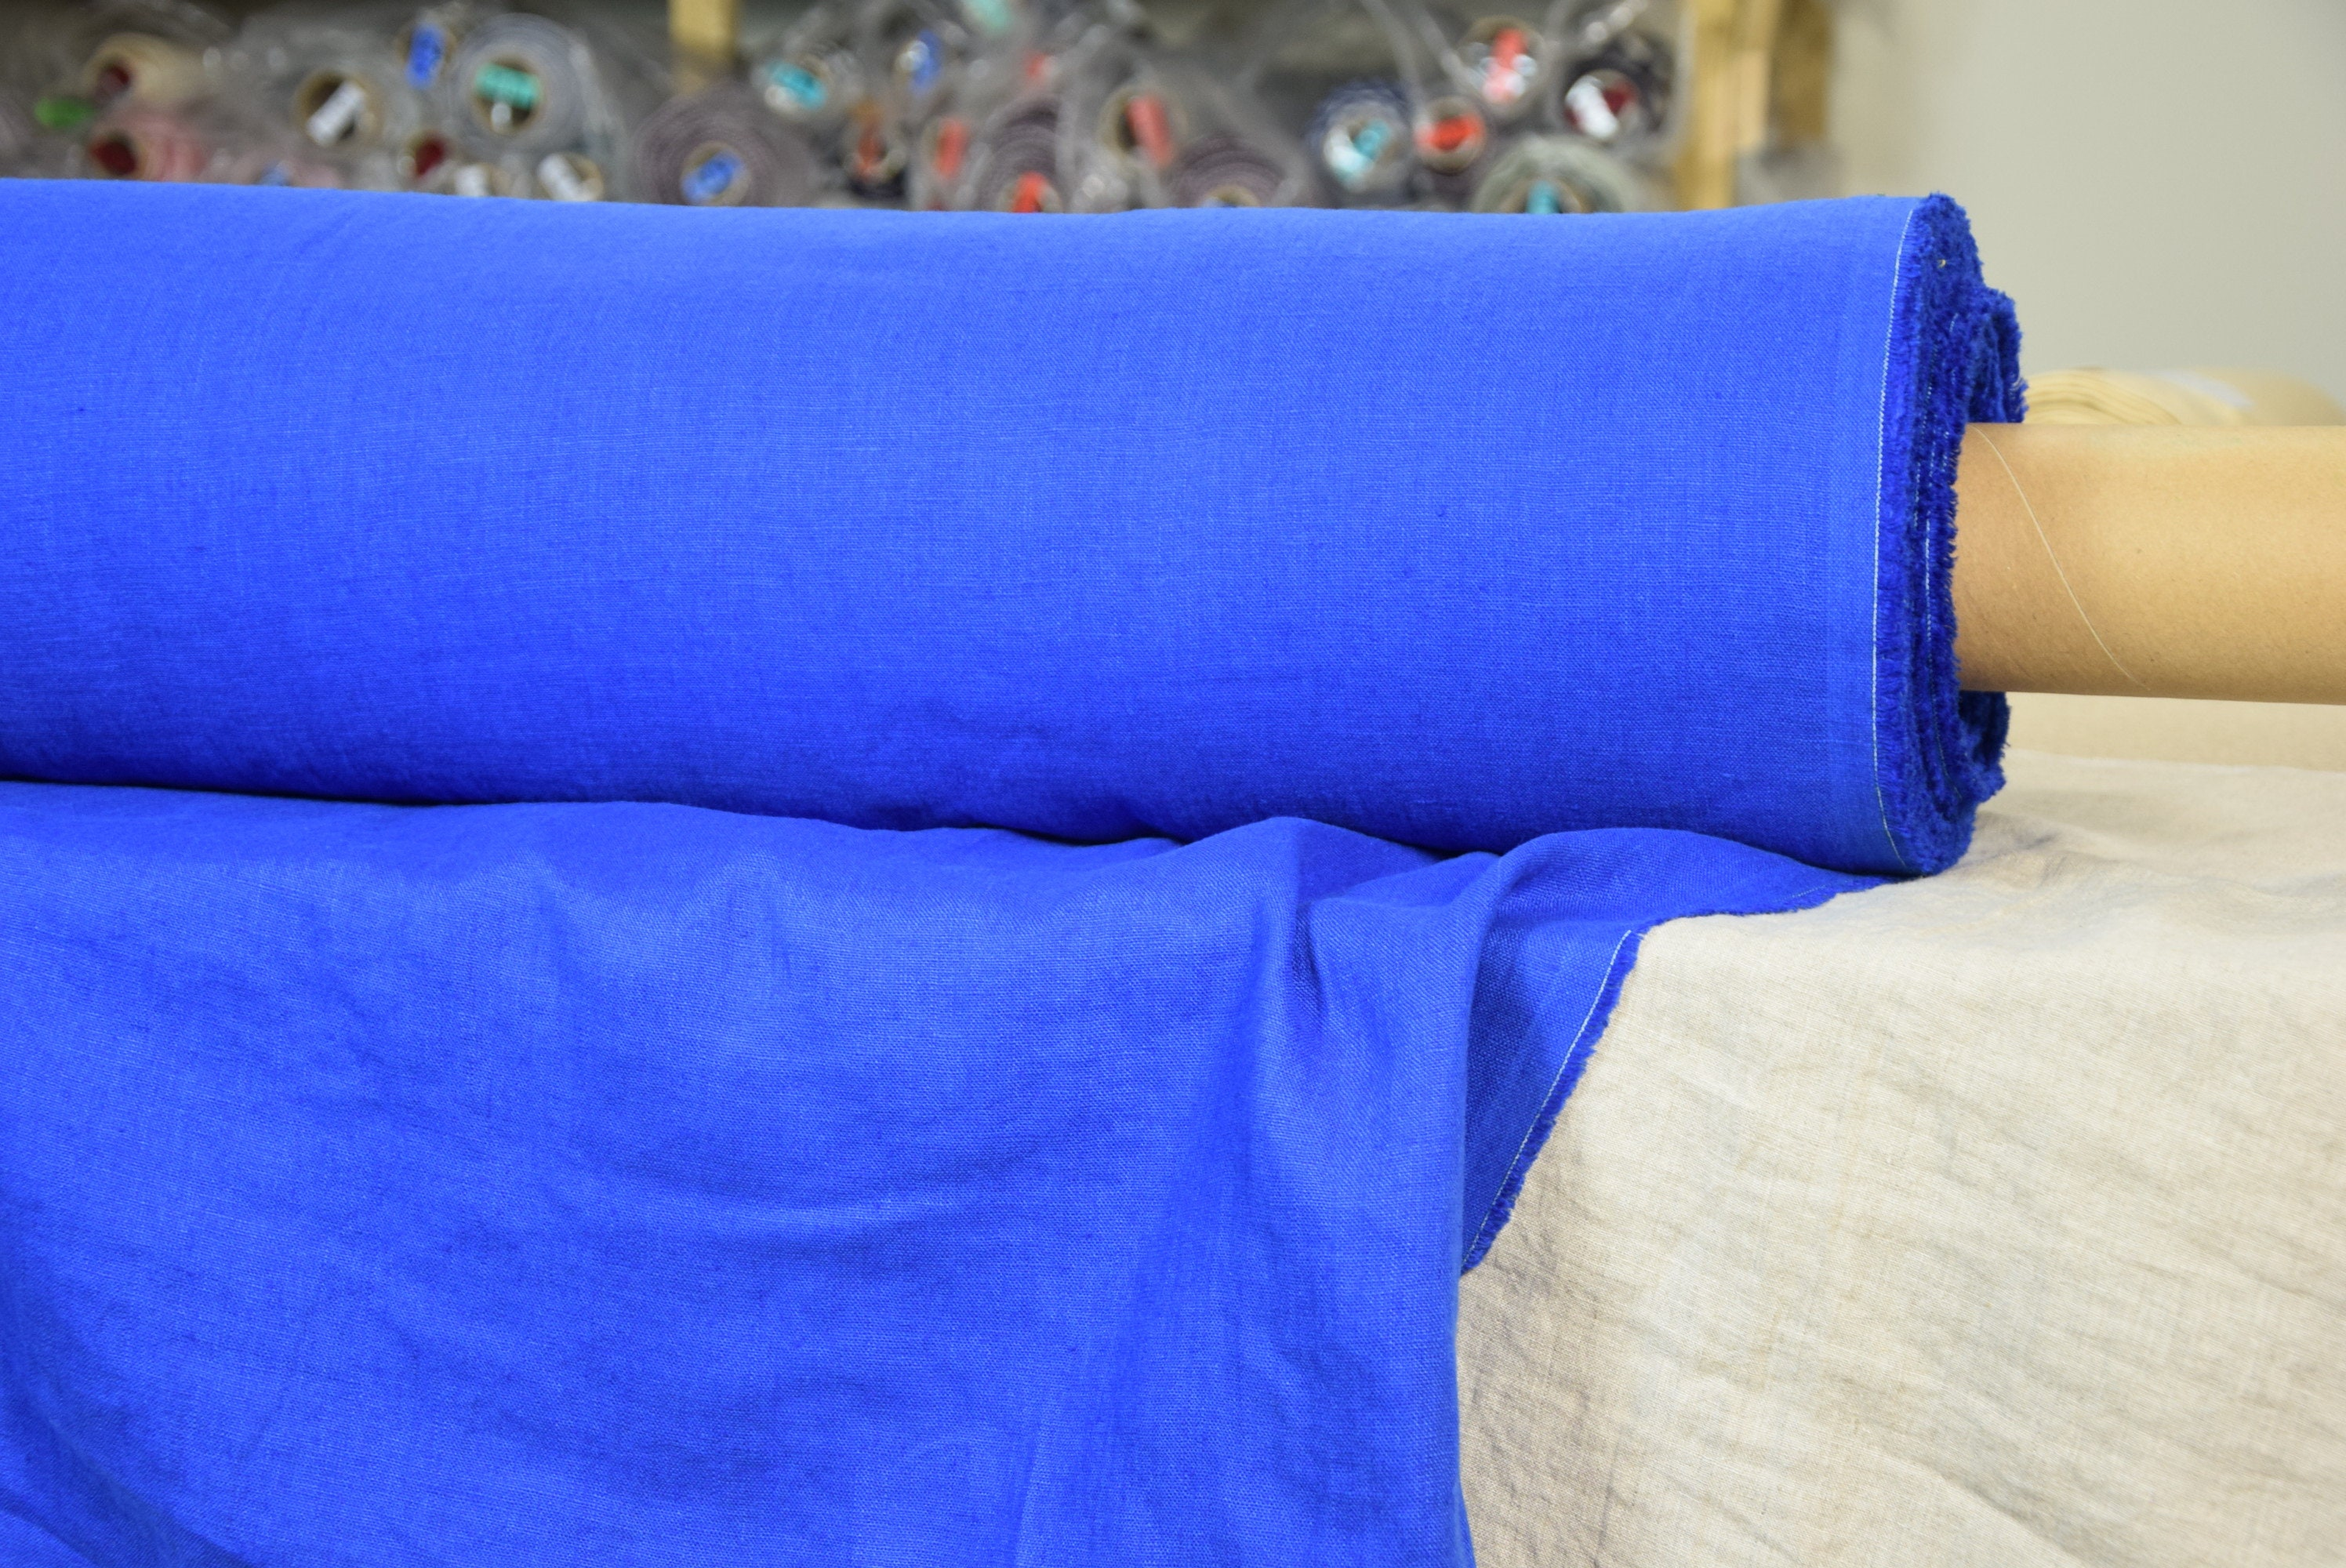 Pure 100/% linen fabric Gloria Saxony Blue 190gsm Quite dark tealish-blue The last piece 1.80mx1.45m=71x57! Washed-softened